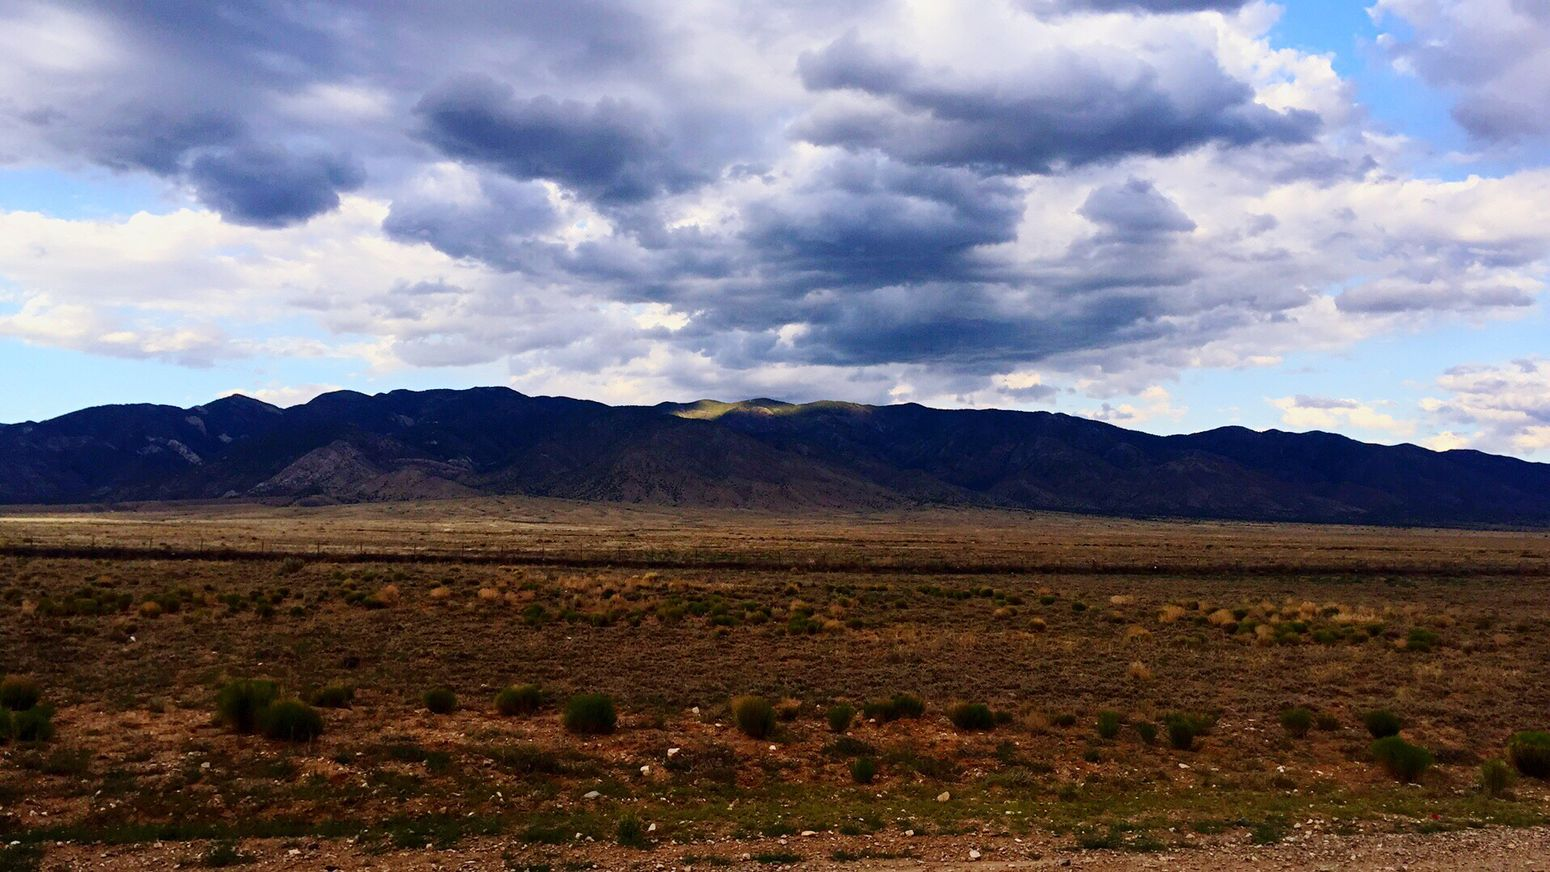 New Mexico Landscape Cloud - Sky Tranquility Sky Beauty In Nature Mountain Field Mountain Range Mountains Southwest  Newmexico Manzano Mountains Tranquil Scene Photography Landofenchantment Photographyislife Photographylovers Tranquility Nature No People Photography Themes Geology Outdoors Foothills